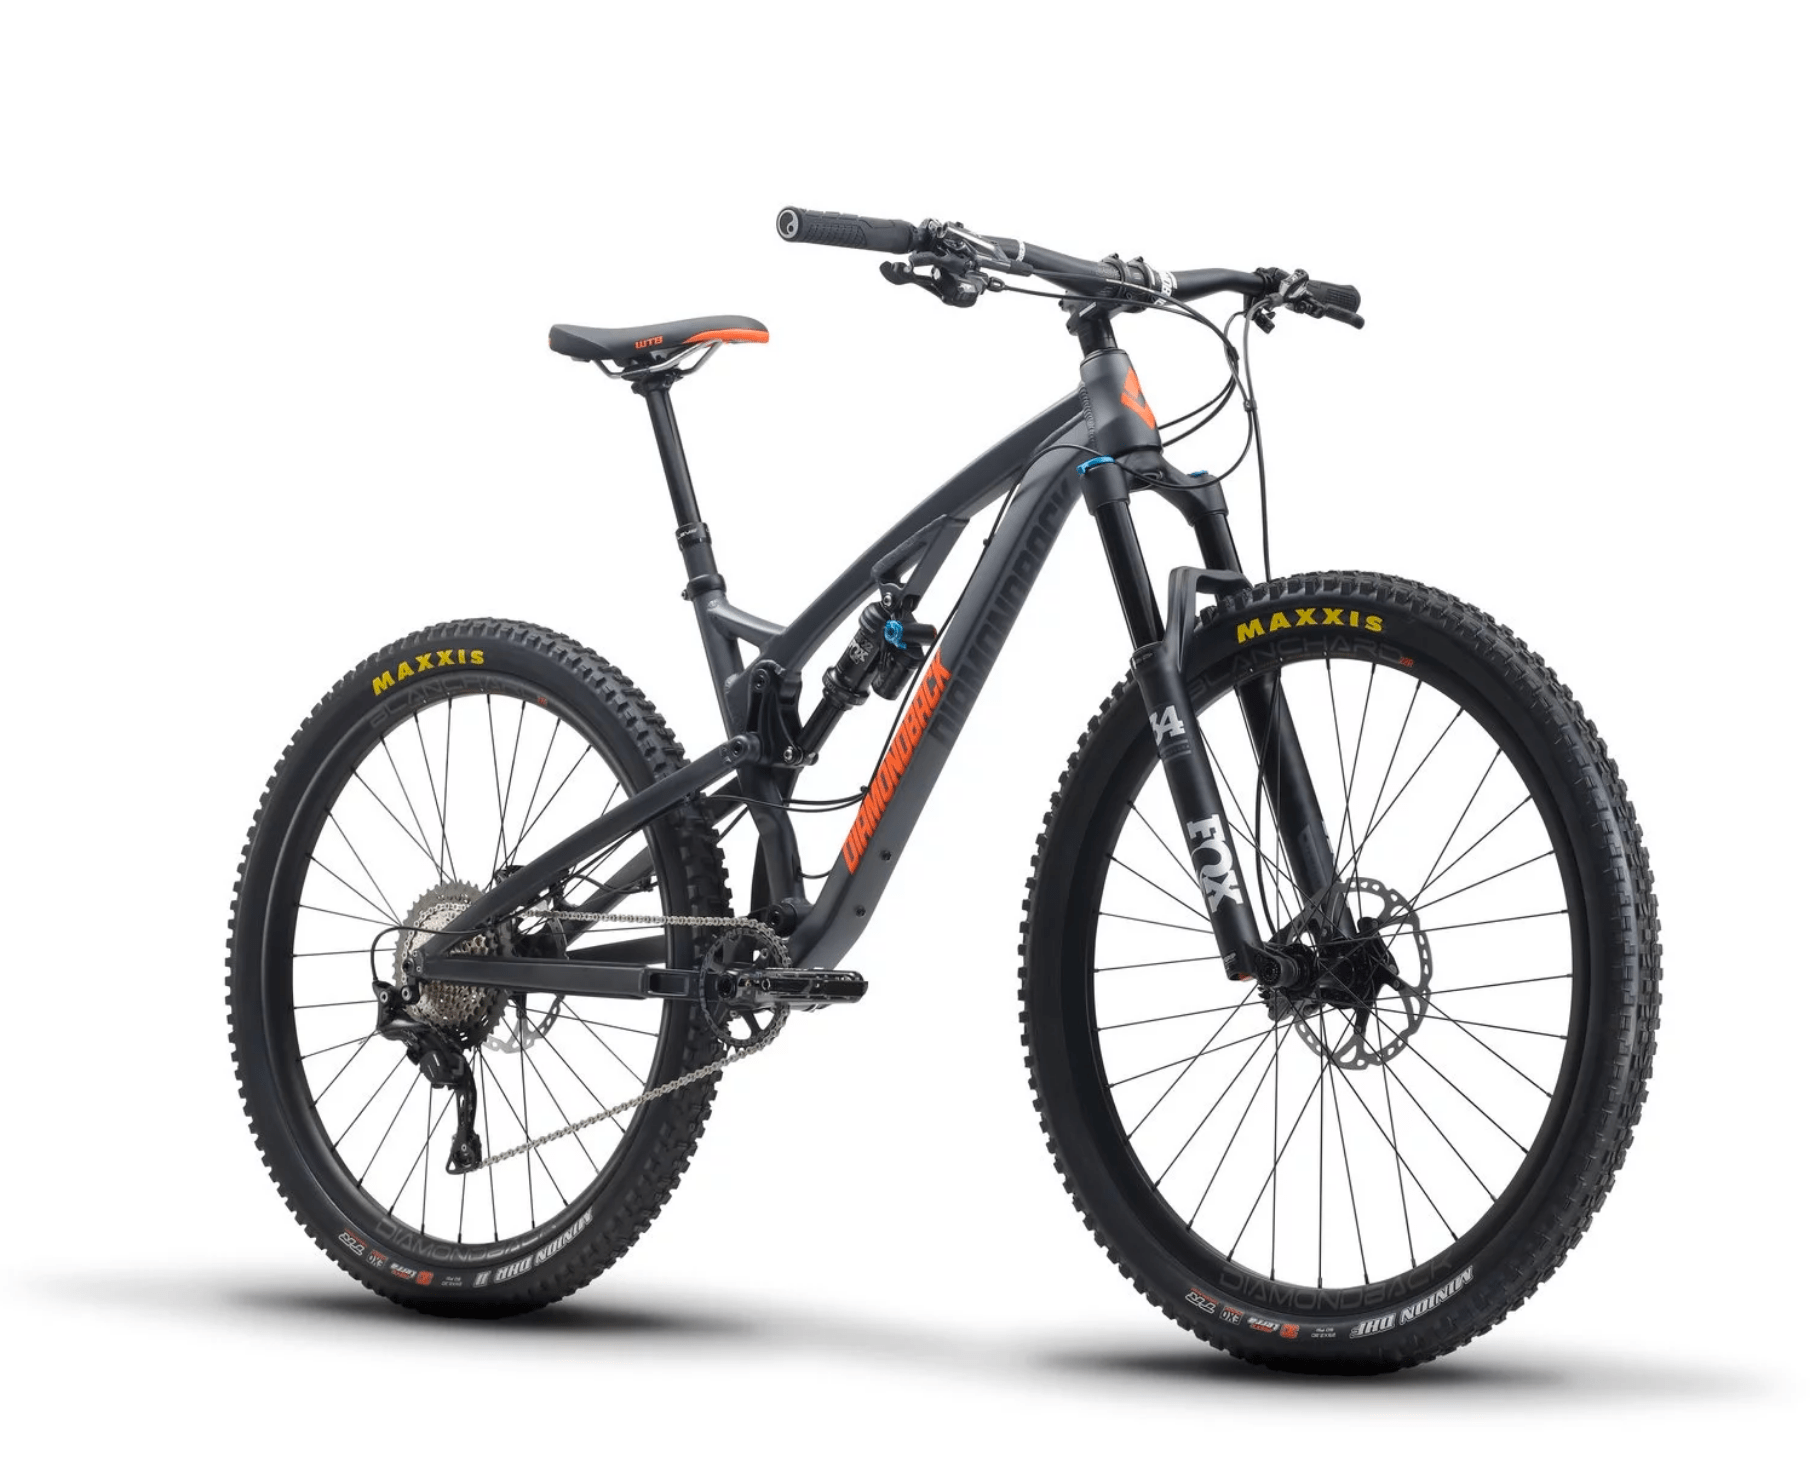 47449a4c48c 2019 Diamondback Release 29er - Everyday MTB